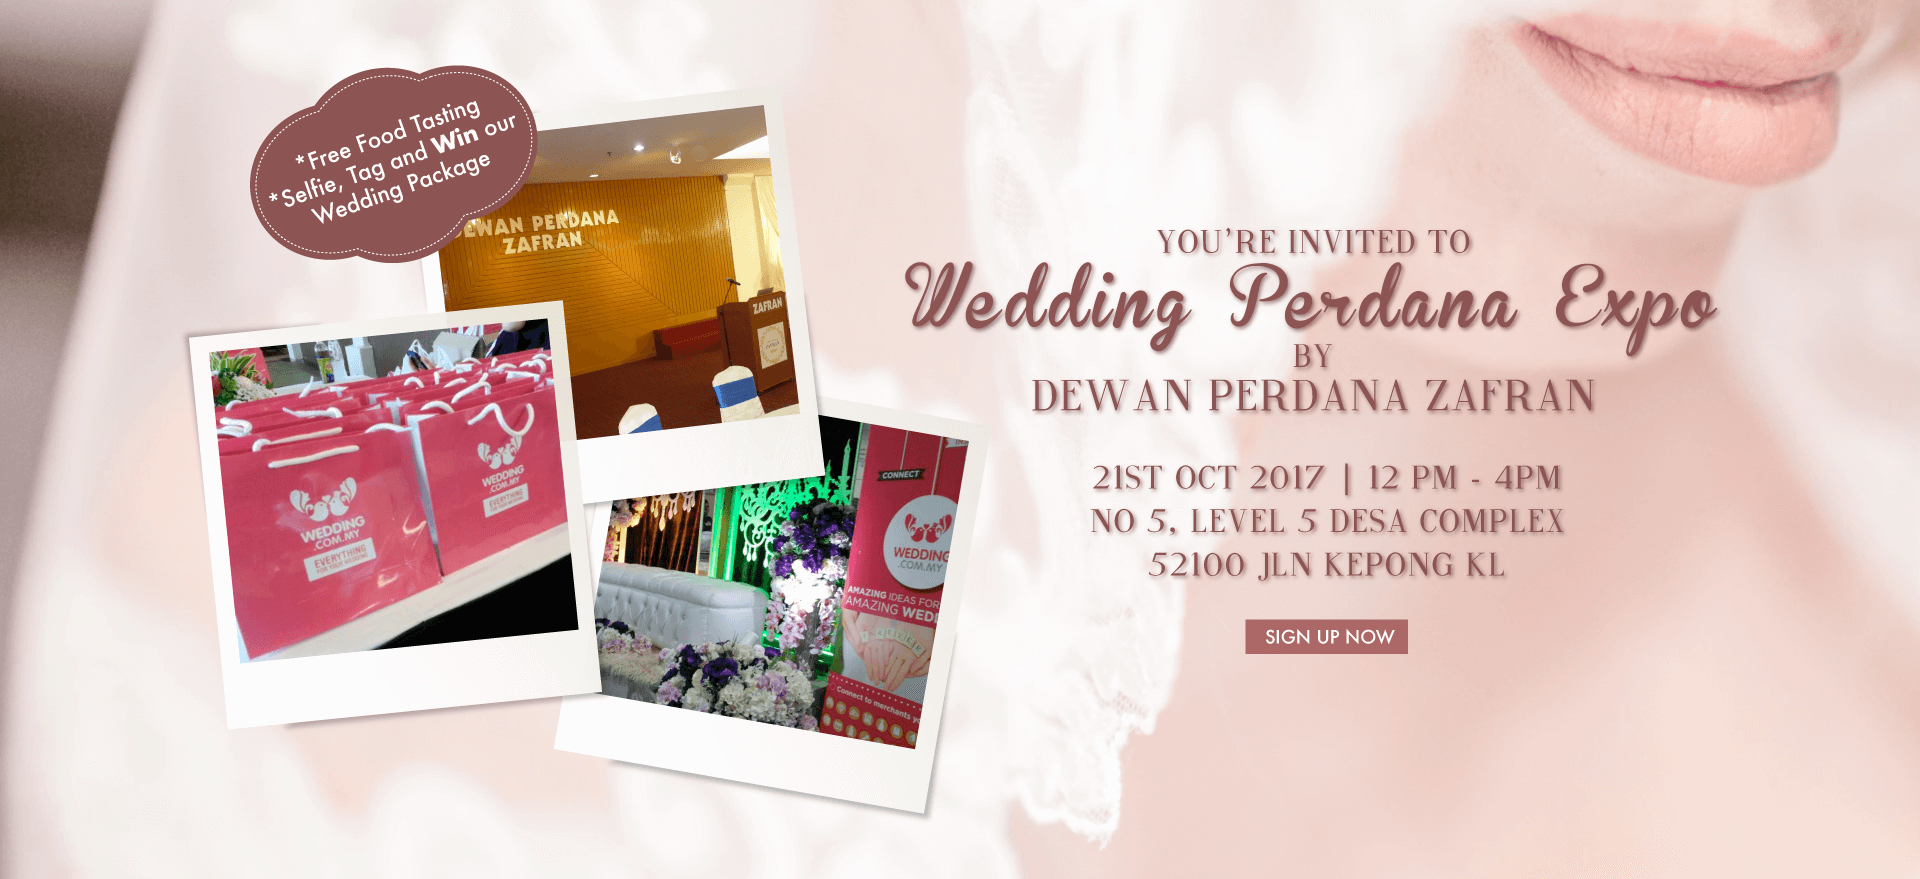 http://event.wedding.com.my/wedding-perdana-expo-201710